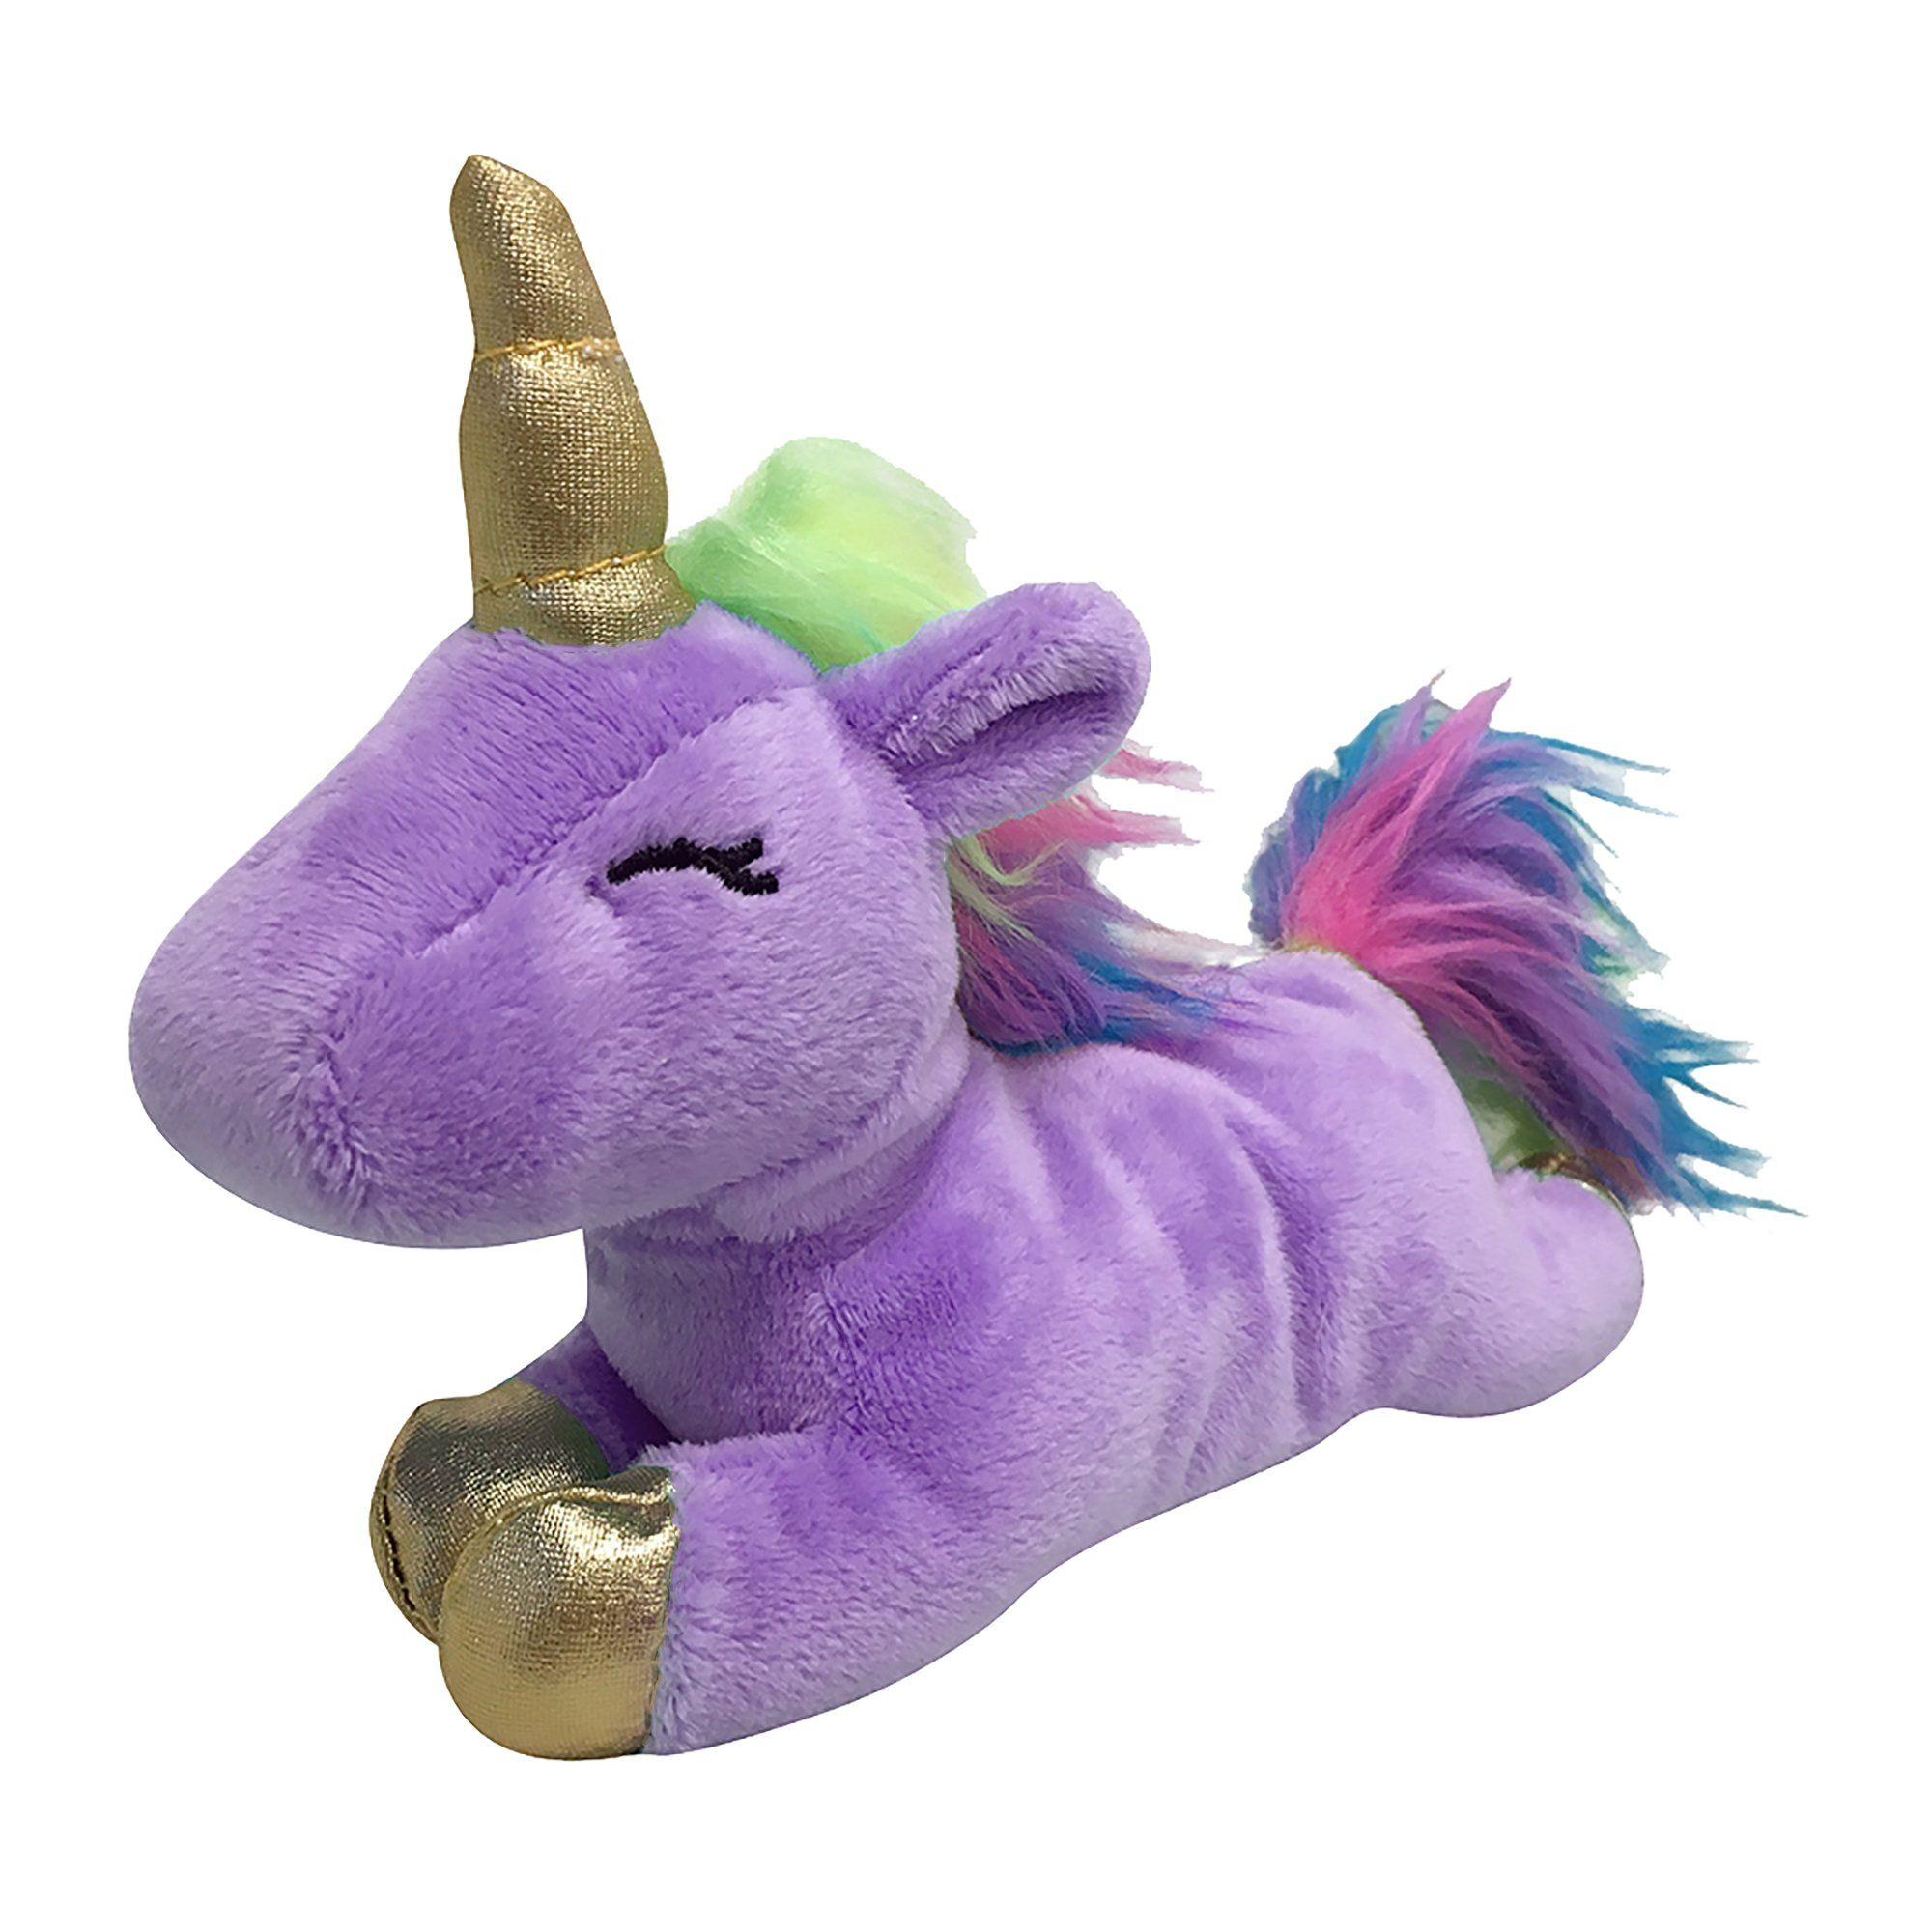 Foufoubrands Foufit Unicorn Plush Purple Dog Toy Small In 2019